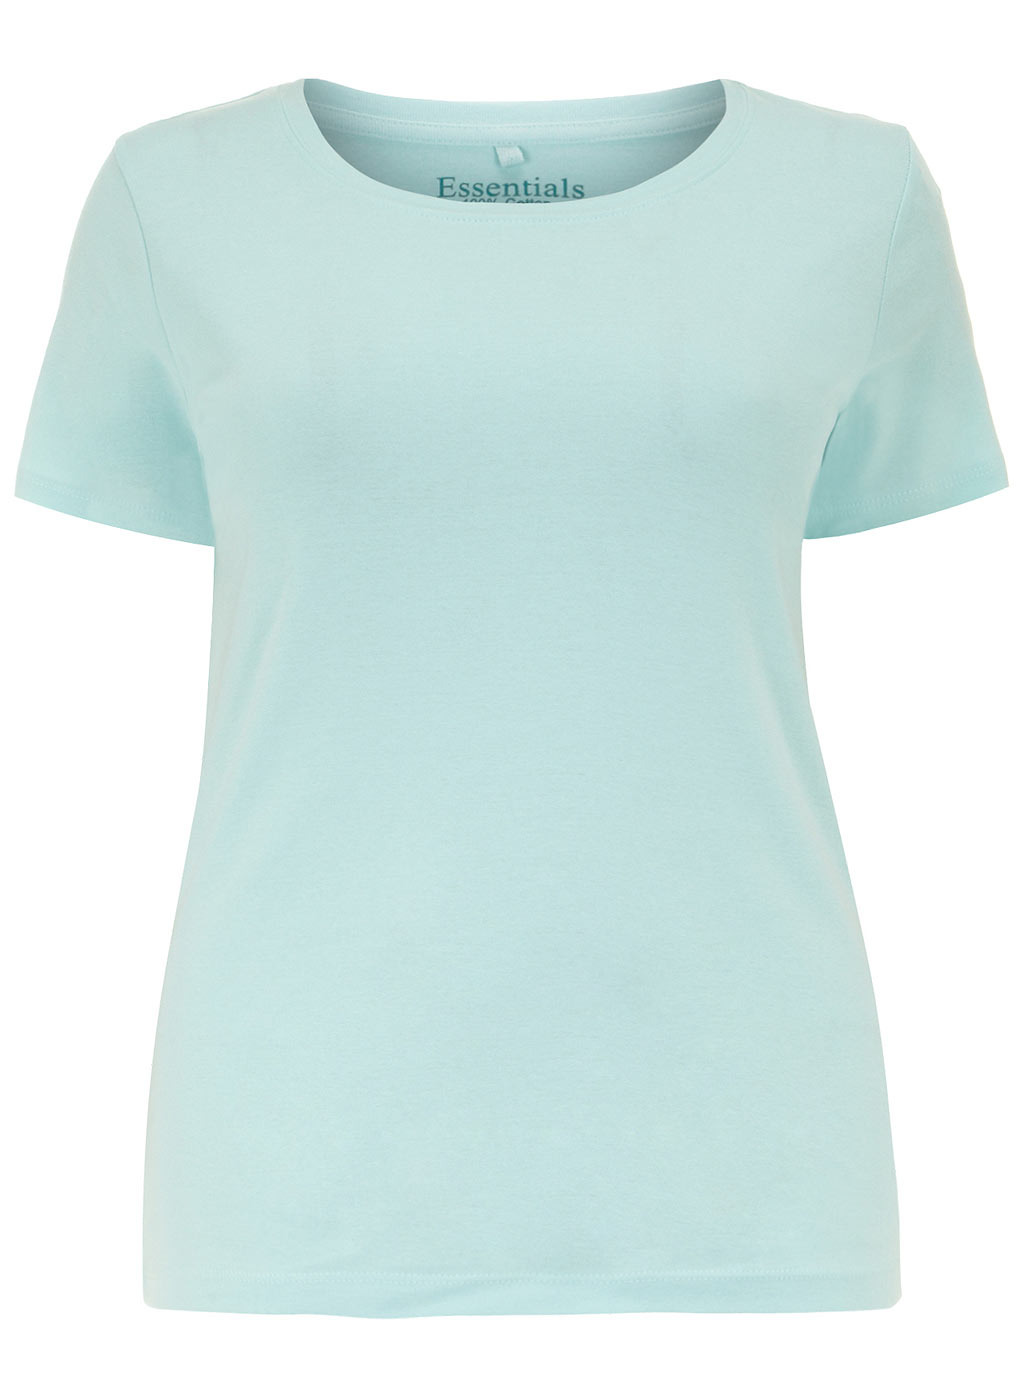 Blue Short Sleeve T Shirt - neckline: round neck; pattern: plain; style: t-shirt; predominant colour: pistachio; occasions: casual, creative work; length: standard; fibres: cotton - 100%; fit: body skimming; sleeve length: short sleeve; sleeve style: standard; pattern type: fabric; texture group: jersey - stretchy/drapey; trends: sorbet shades; season: s/s 2014